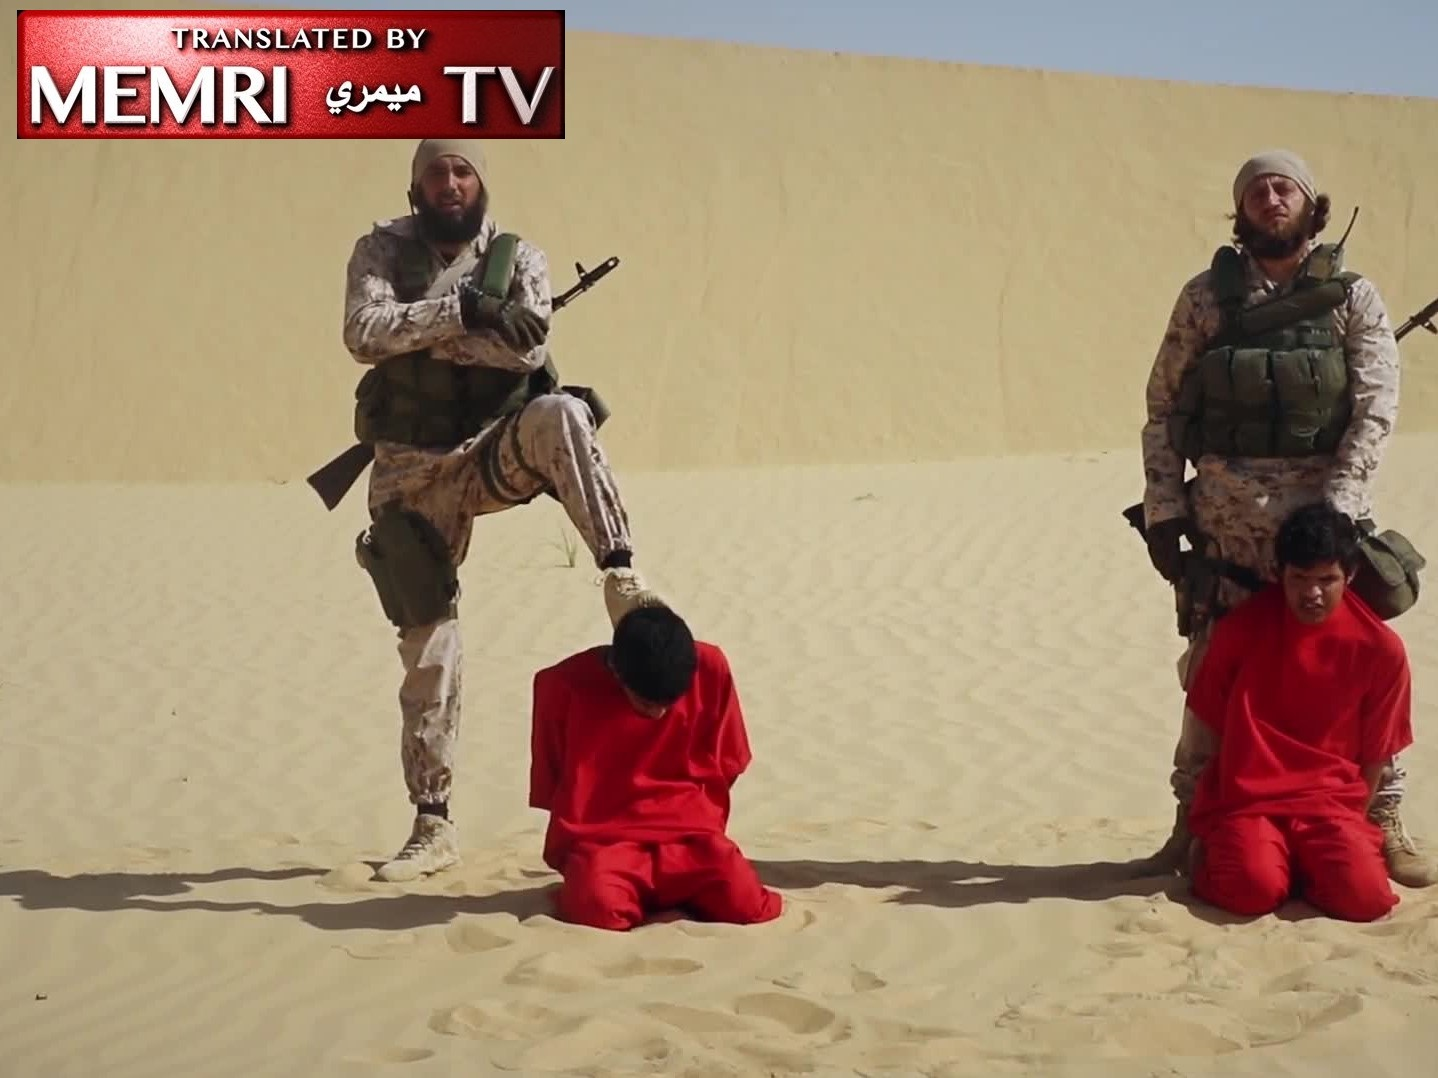 ISIS Sinai Video Shows